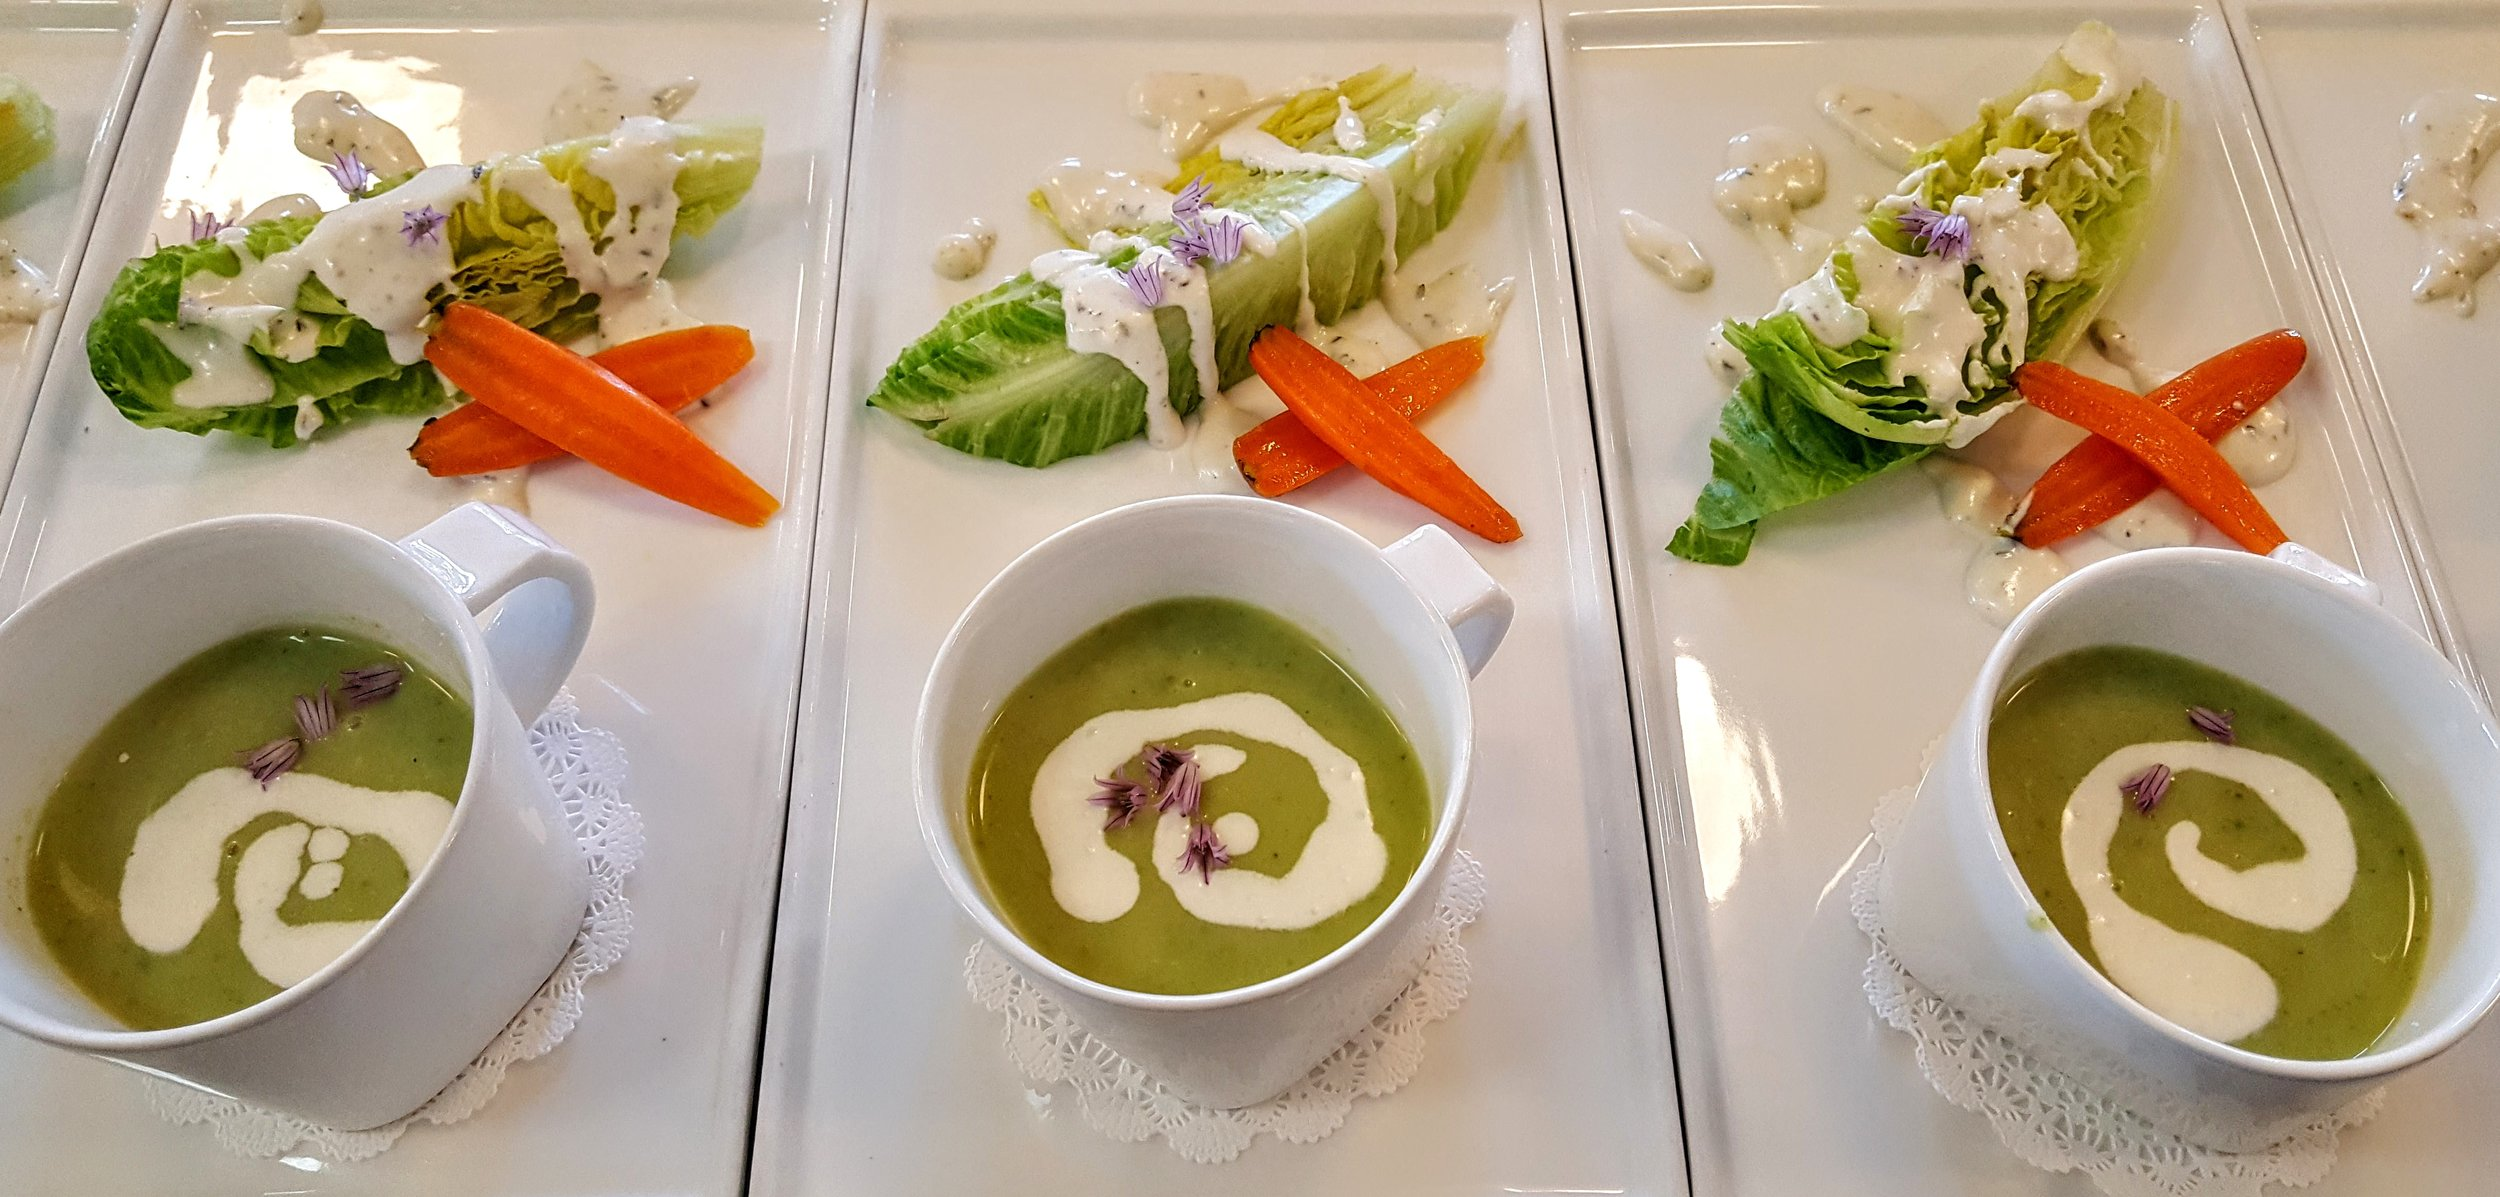 Chilled English Pea & Basil Soup  Baby carrots, baby romaine & blue cheese dressing